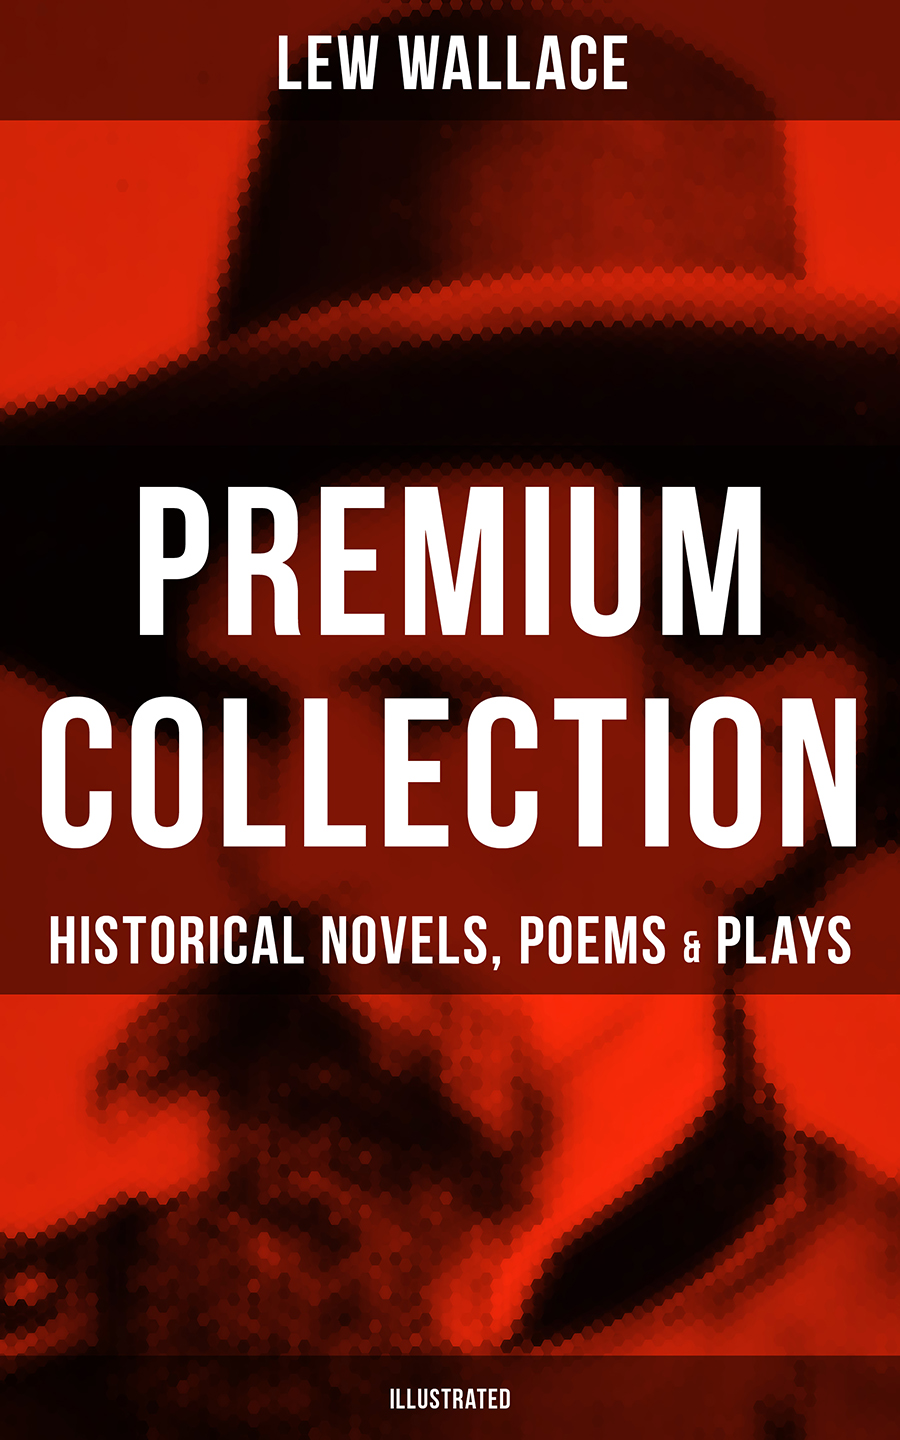 Lew Wallace LEW WALLACE Premium Collection: Historical Novels, Poems & Plays (Illustrated) цена и фото